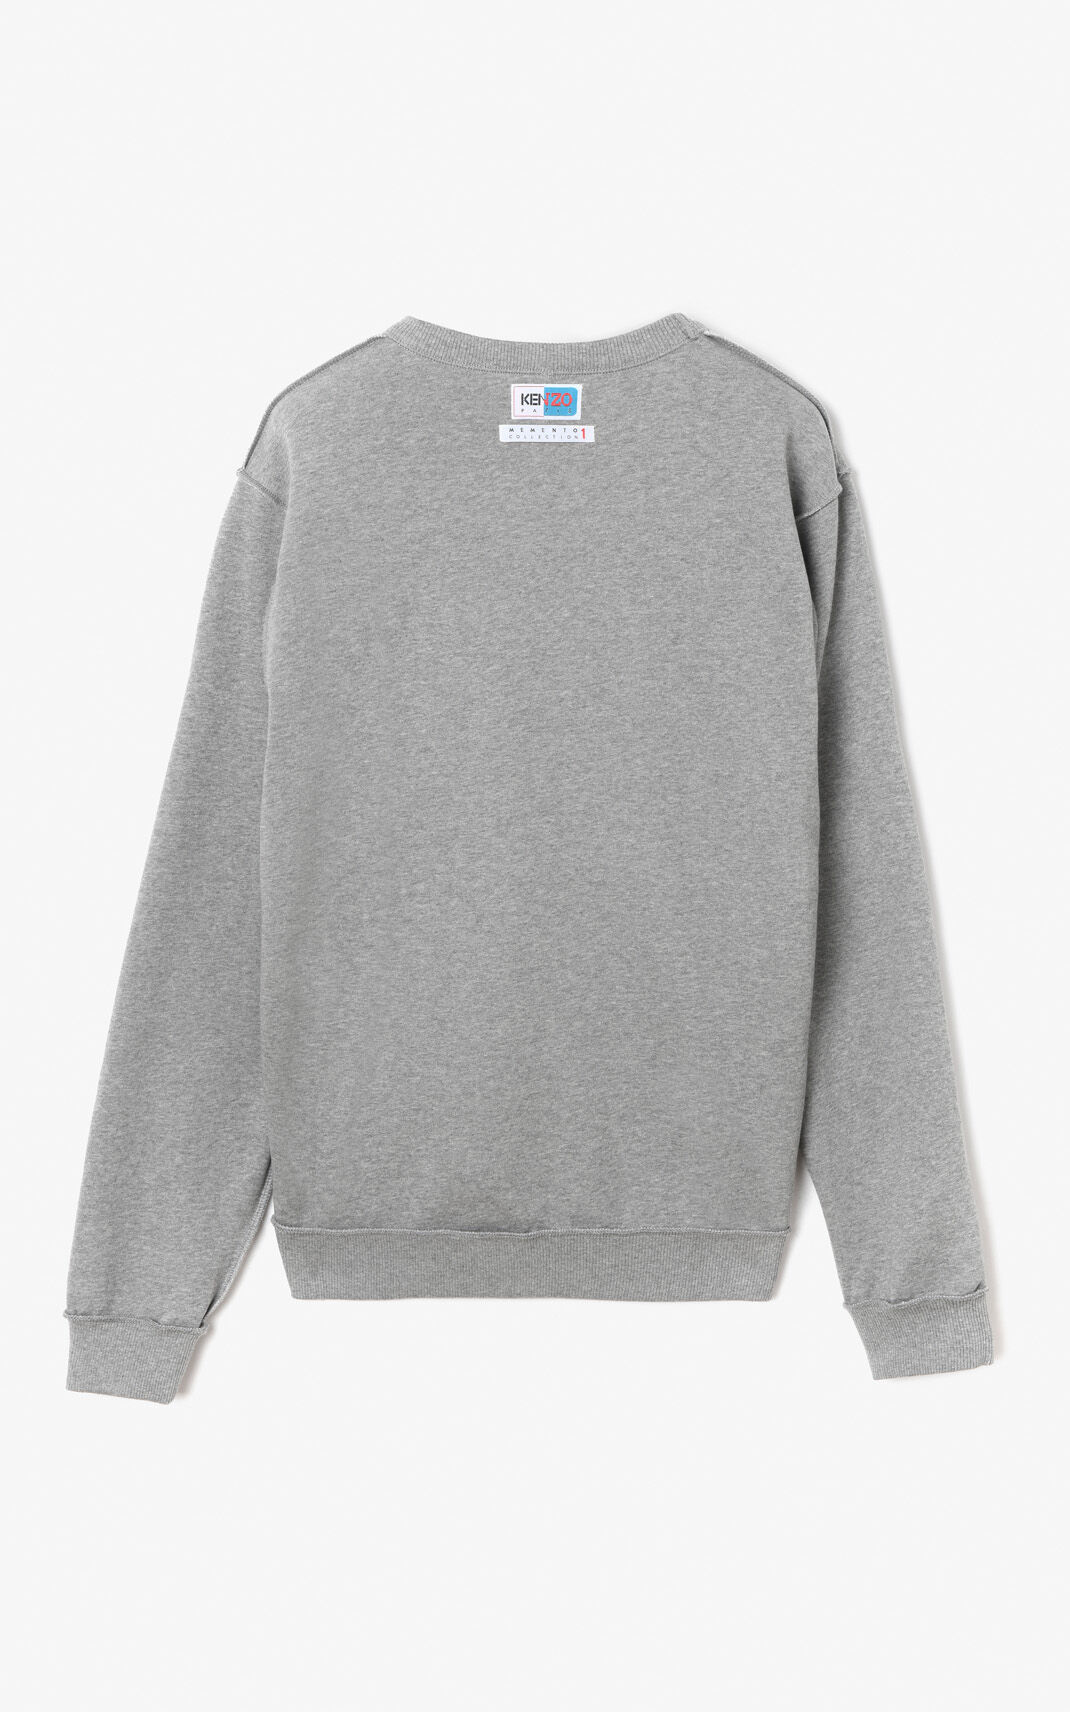 DOVE GREY Reversible KENZO Paris Sweatshirt for men